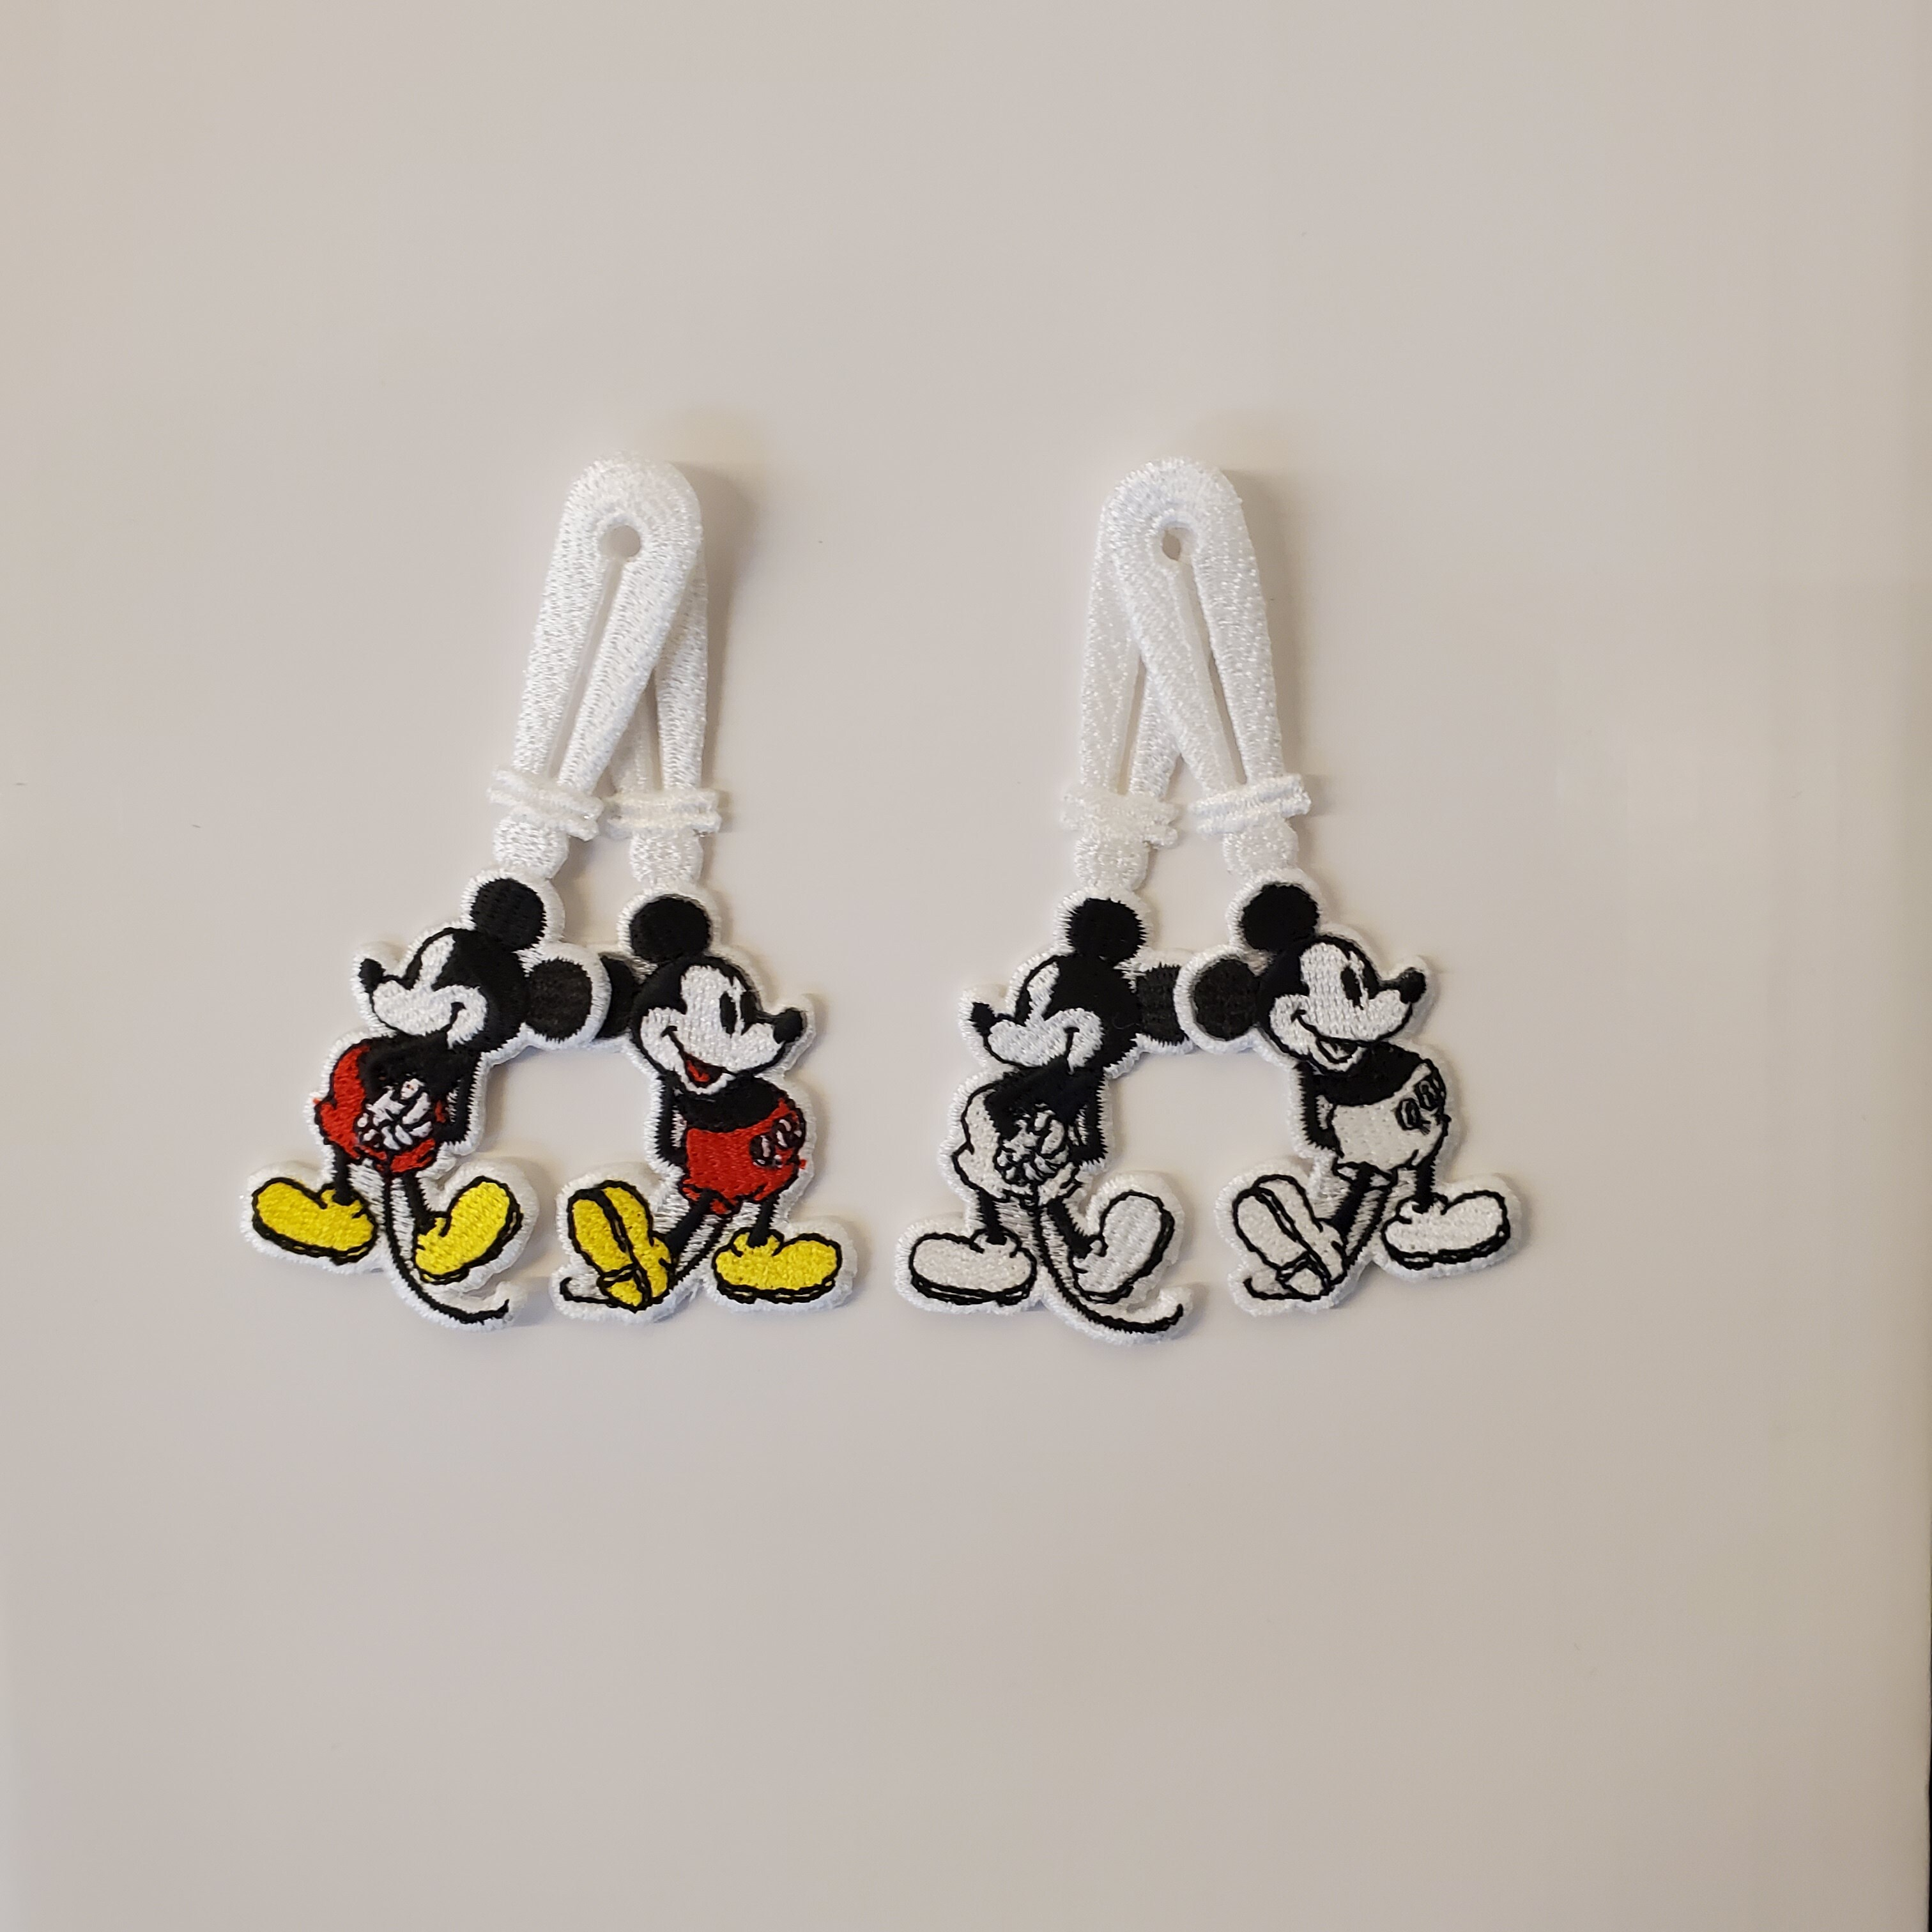 sa.0029dSS20 button ornament. (monotone color Mickey Mouse back style)